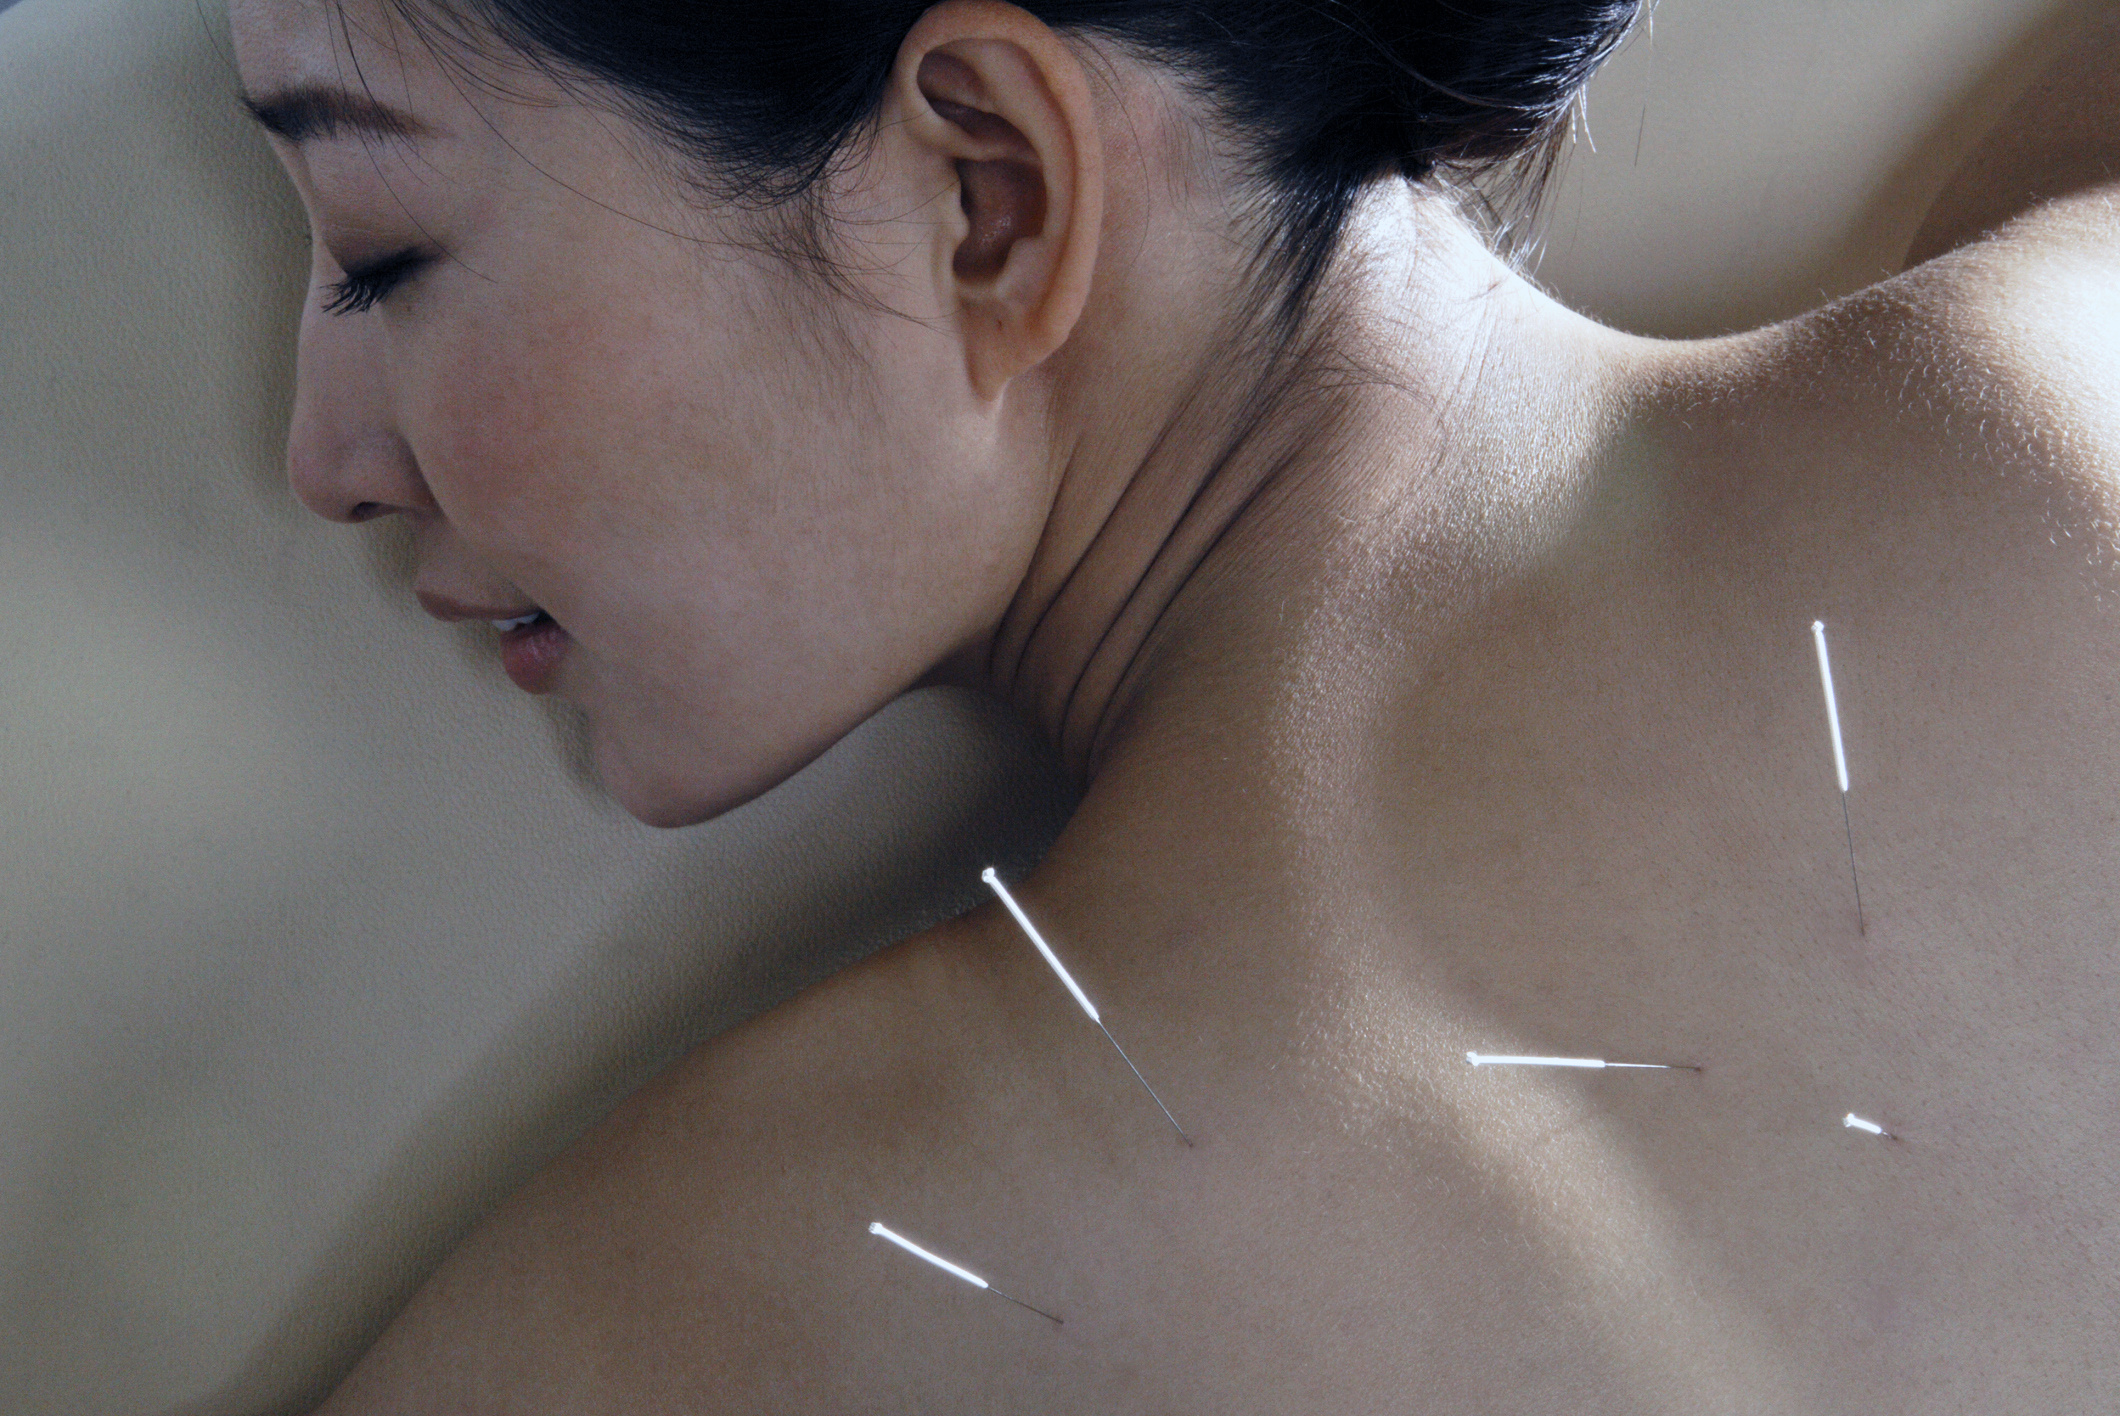 Acupuncture Practice – Over 420 patients treated – Seaside, OR